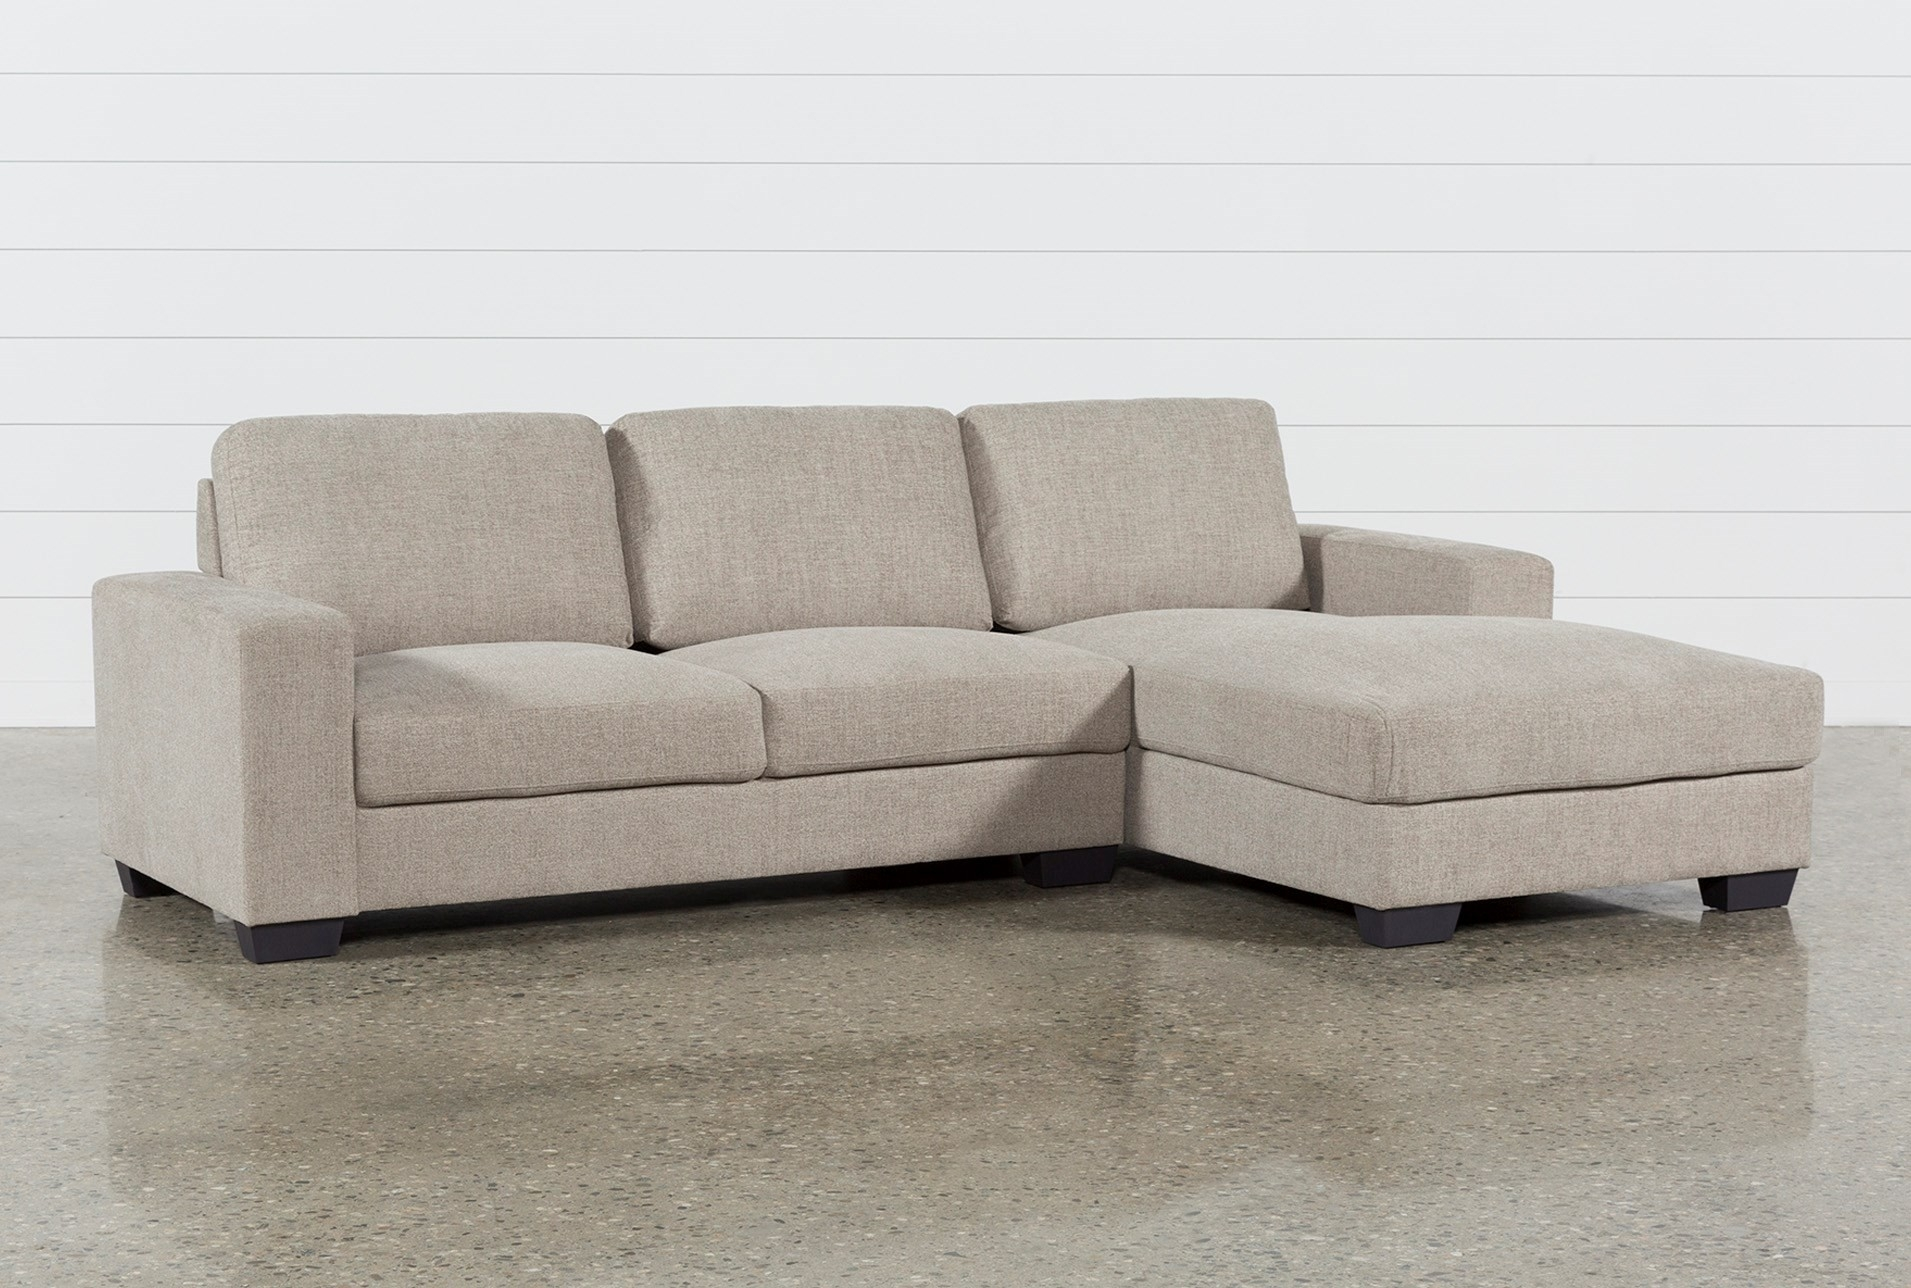 Sectional With 2 Chaises - Implantologiabogota.co inside Tenny Cognac 2 Piece Left Facing Chaise Sectionals With 2 Headrest (Image 16 of 30)